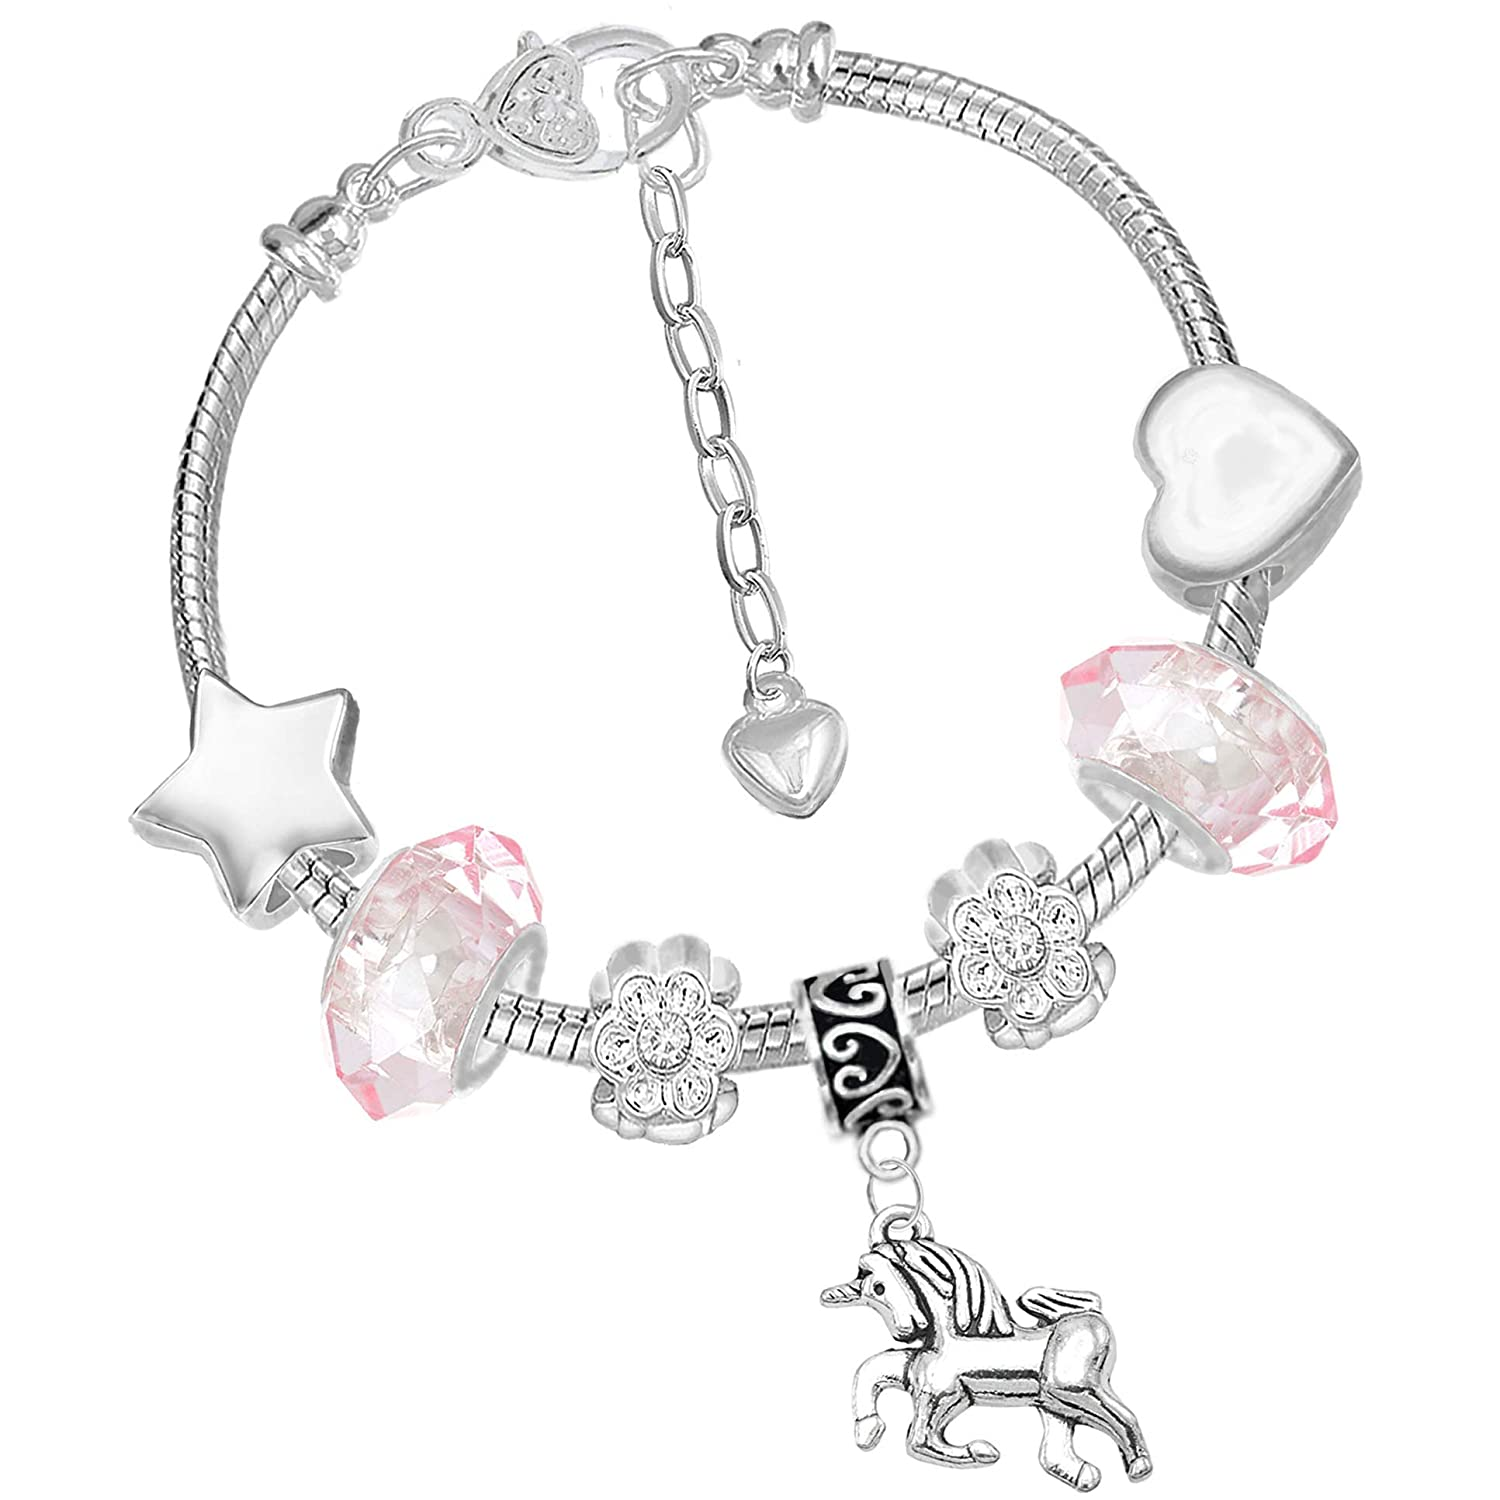 Girls Magical Unicorn Sparkly Pink Crystal Charm Bracelet with Gift Box Set Charm Buddy ® NXG-3 CH-71 Q-32